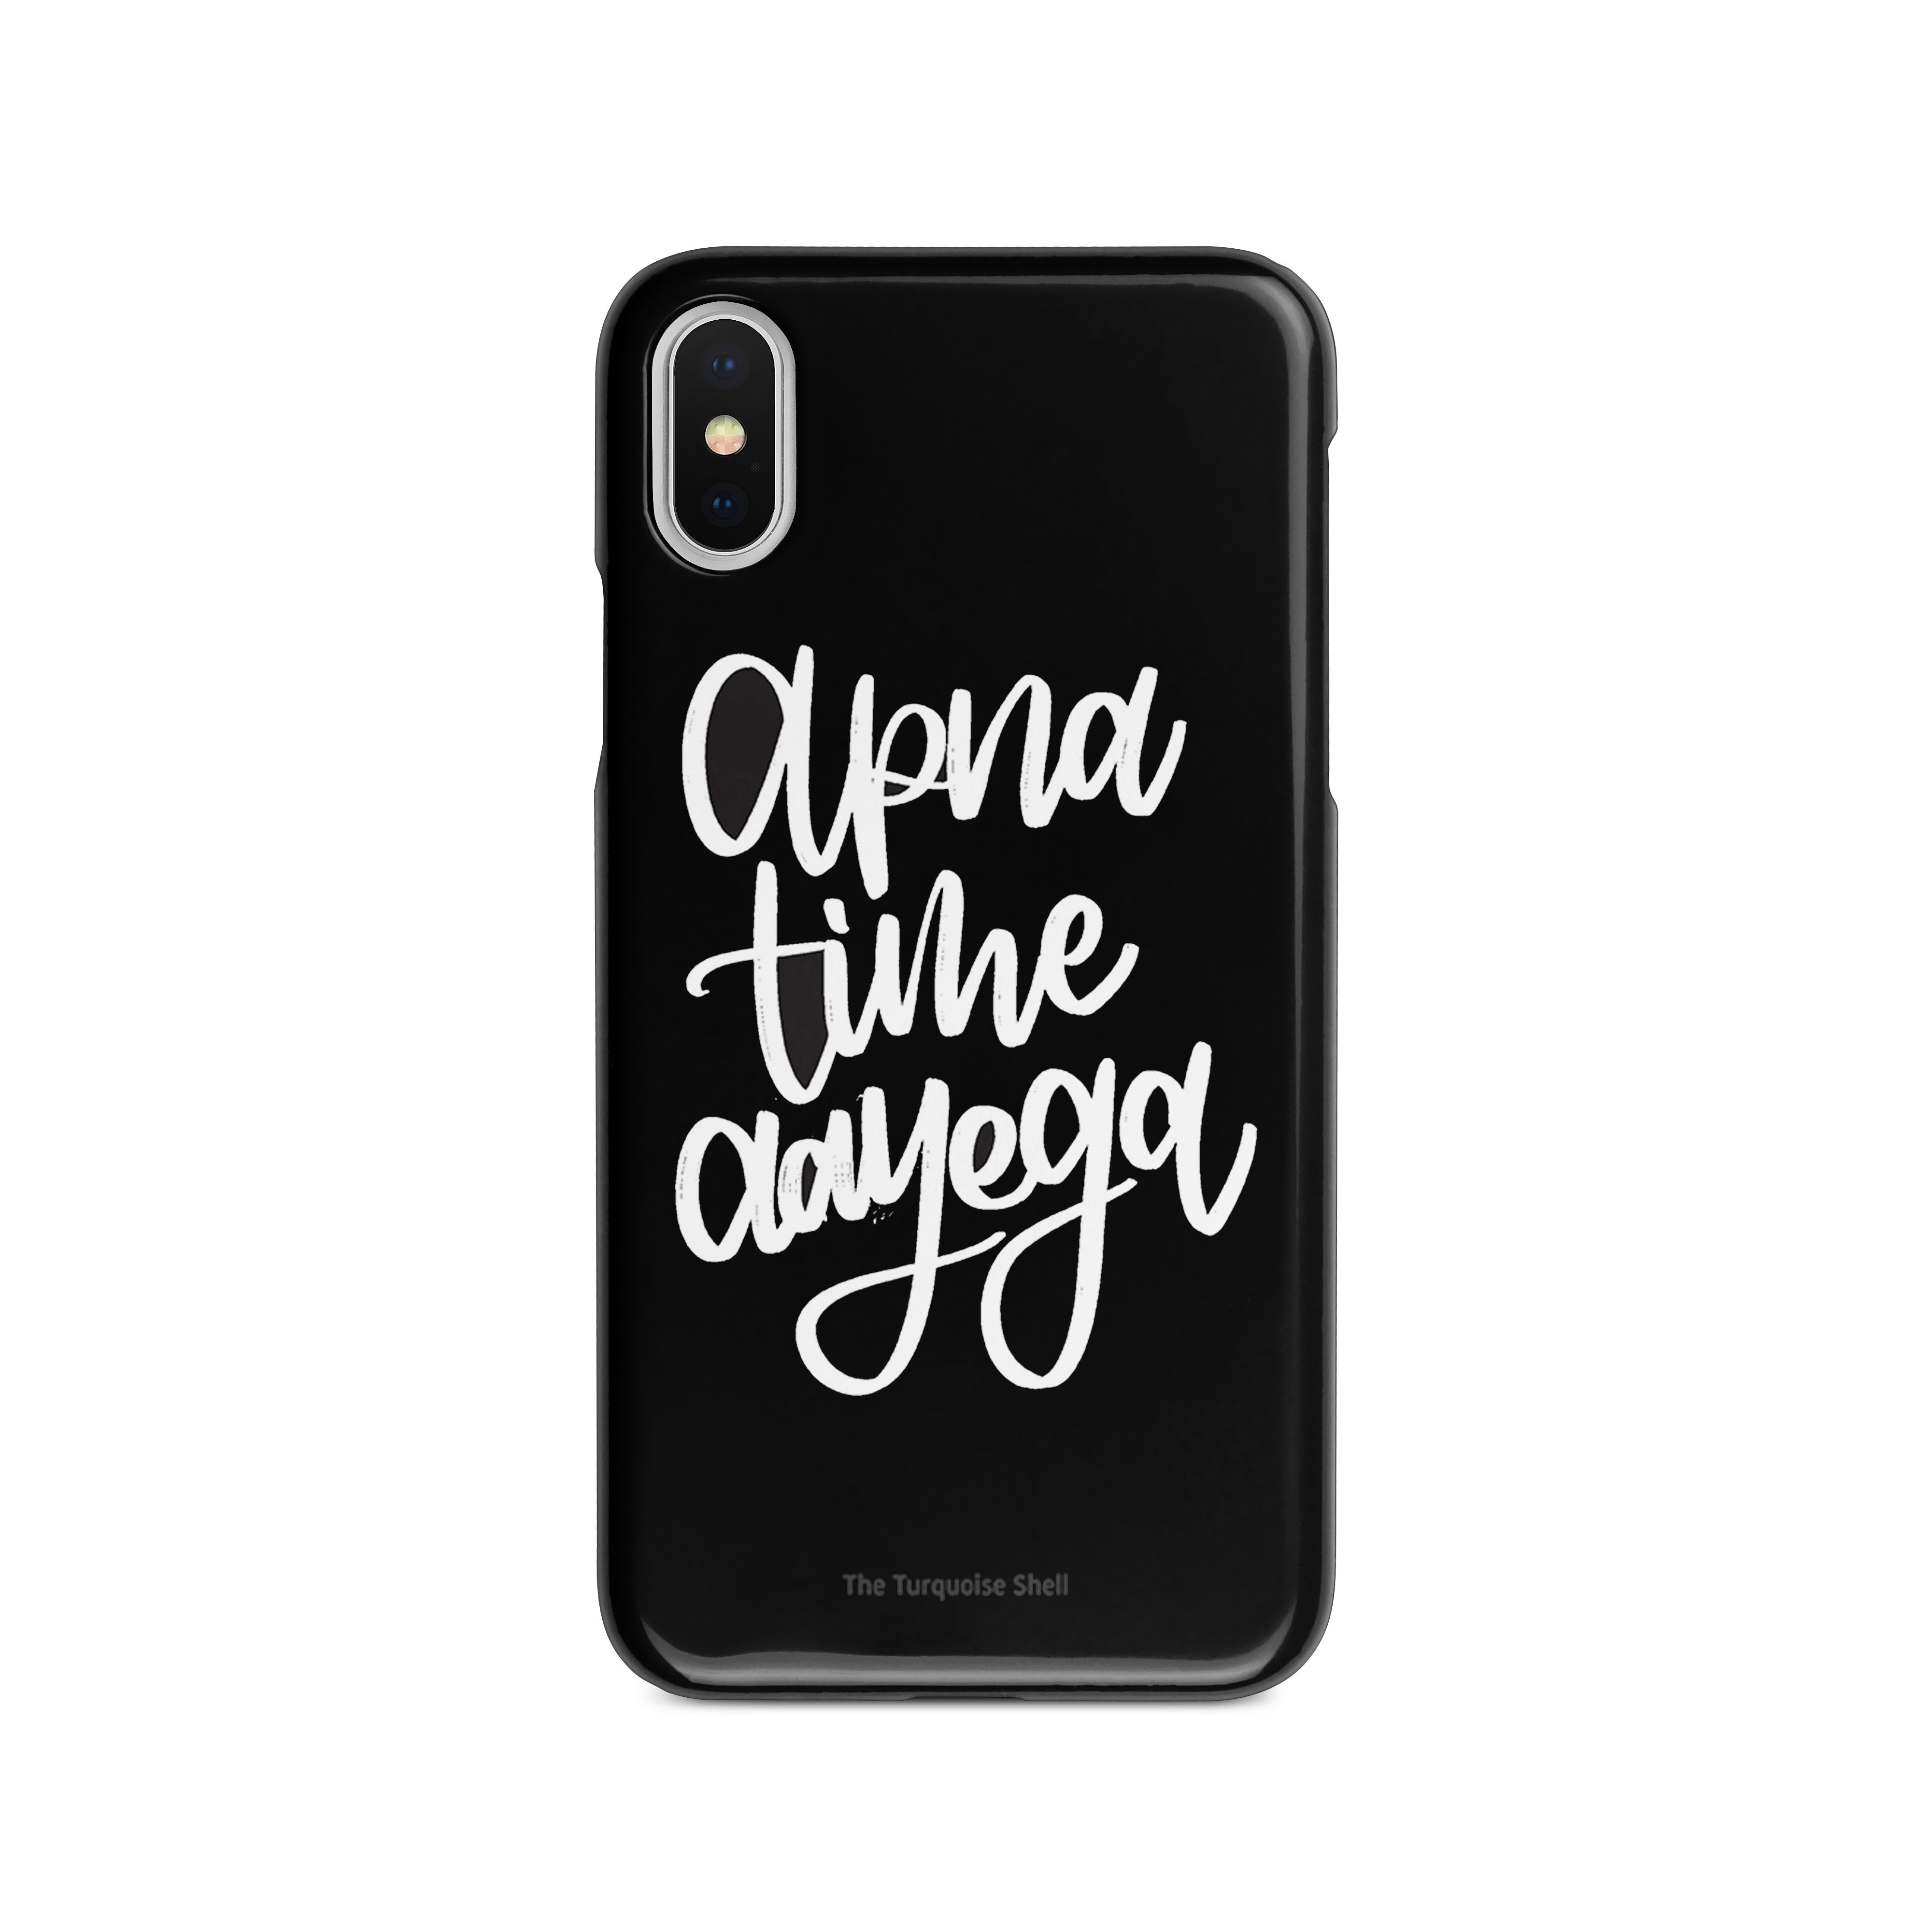 size 40 3738d 79e9a Apna Time Aayega - Buy Unicorn iPhoneX Mobile Cover in India - Instanote